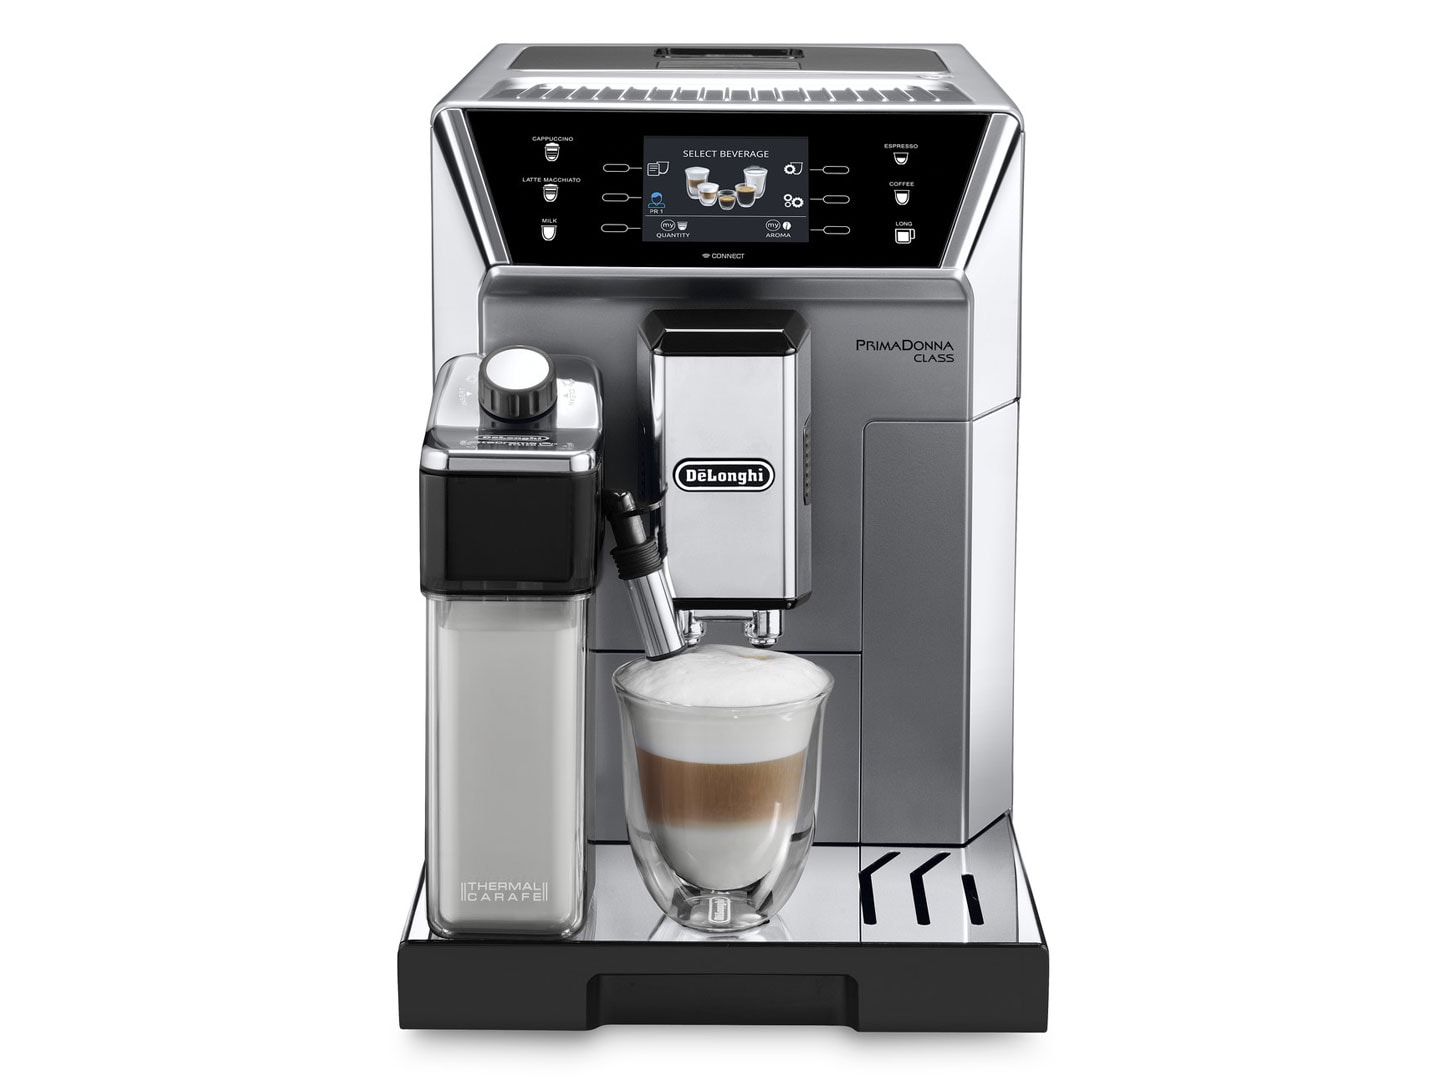 PrimaDonna Class ECAM 550.75.MS fully automatic coffee machine DeLonghi Australia